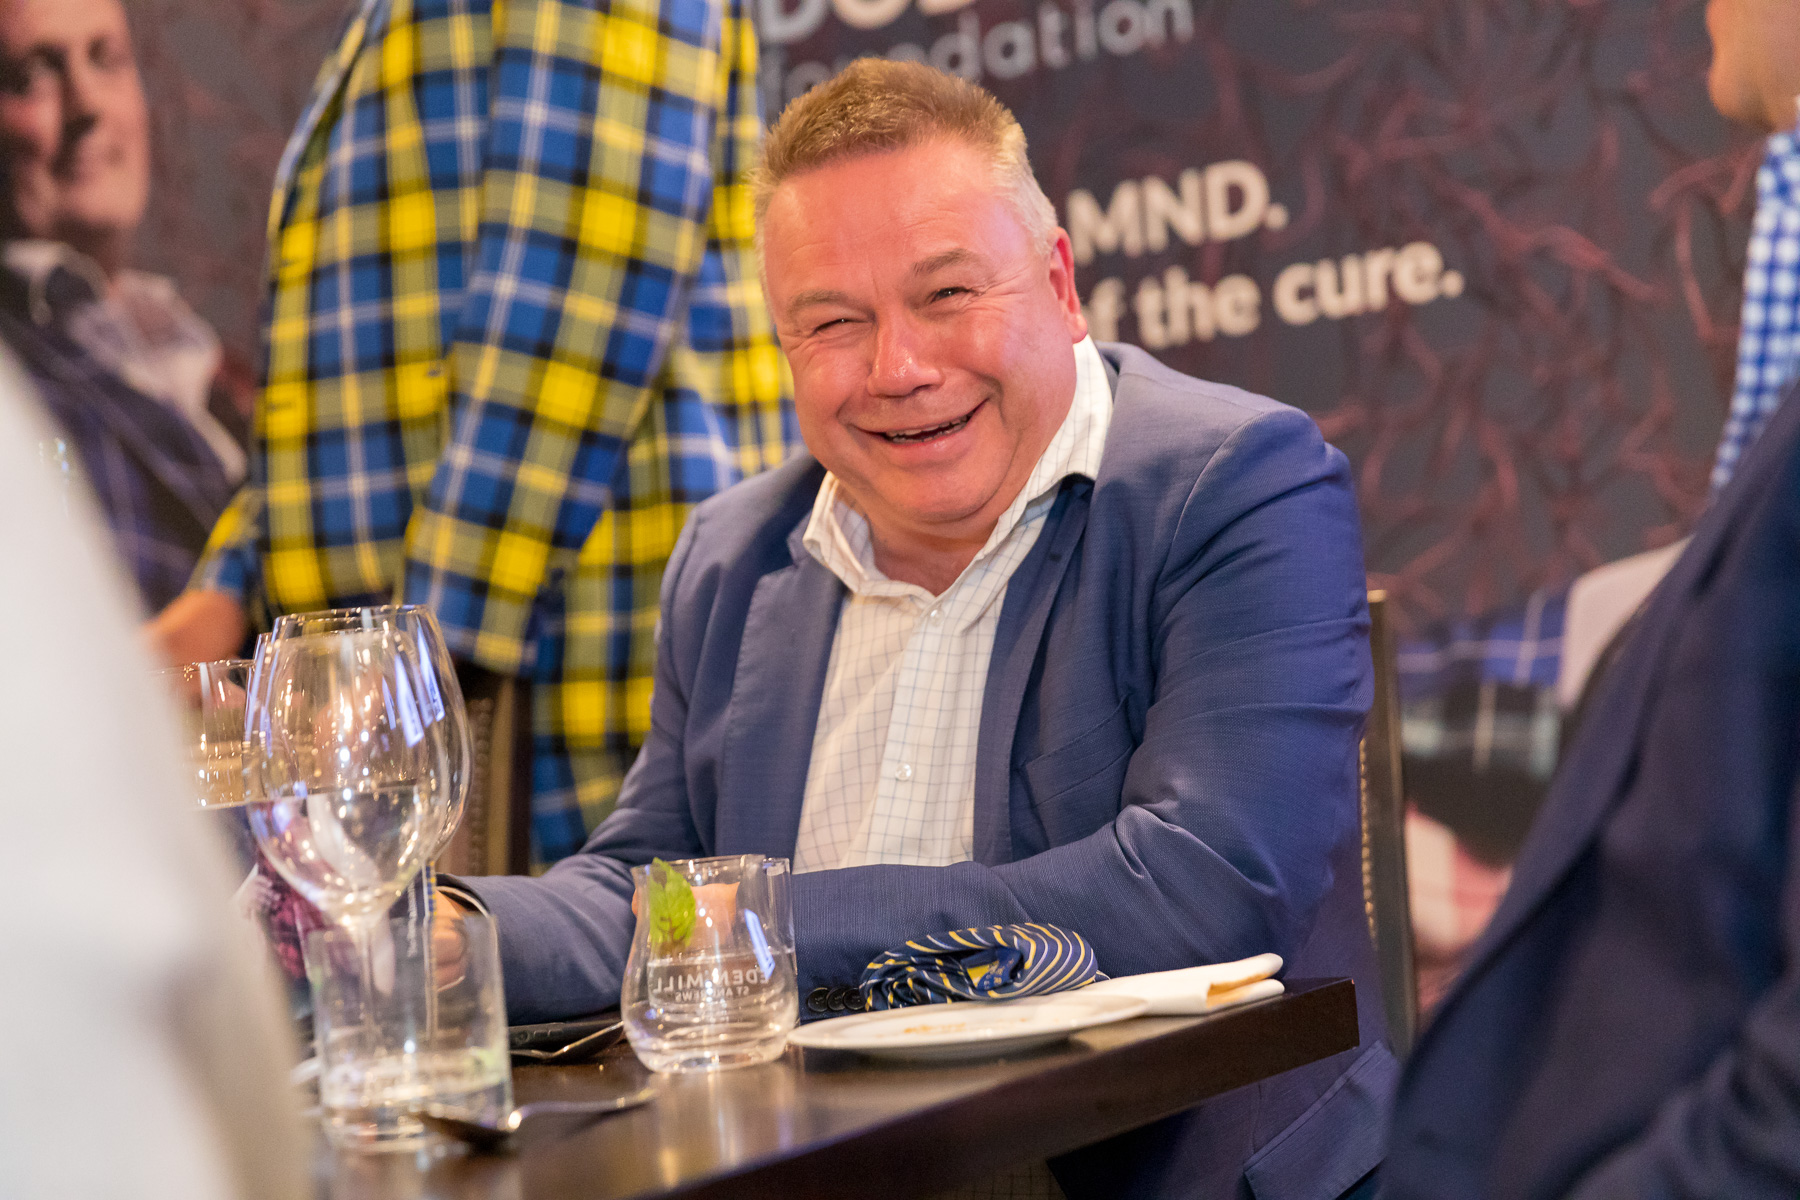 Doddie-golf-day-dinner-9.jpg